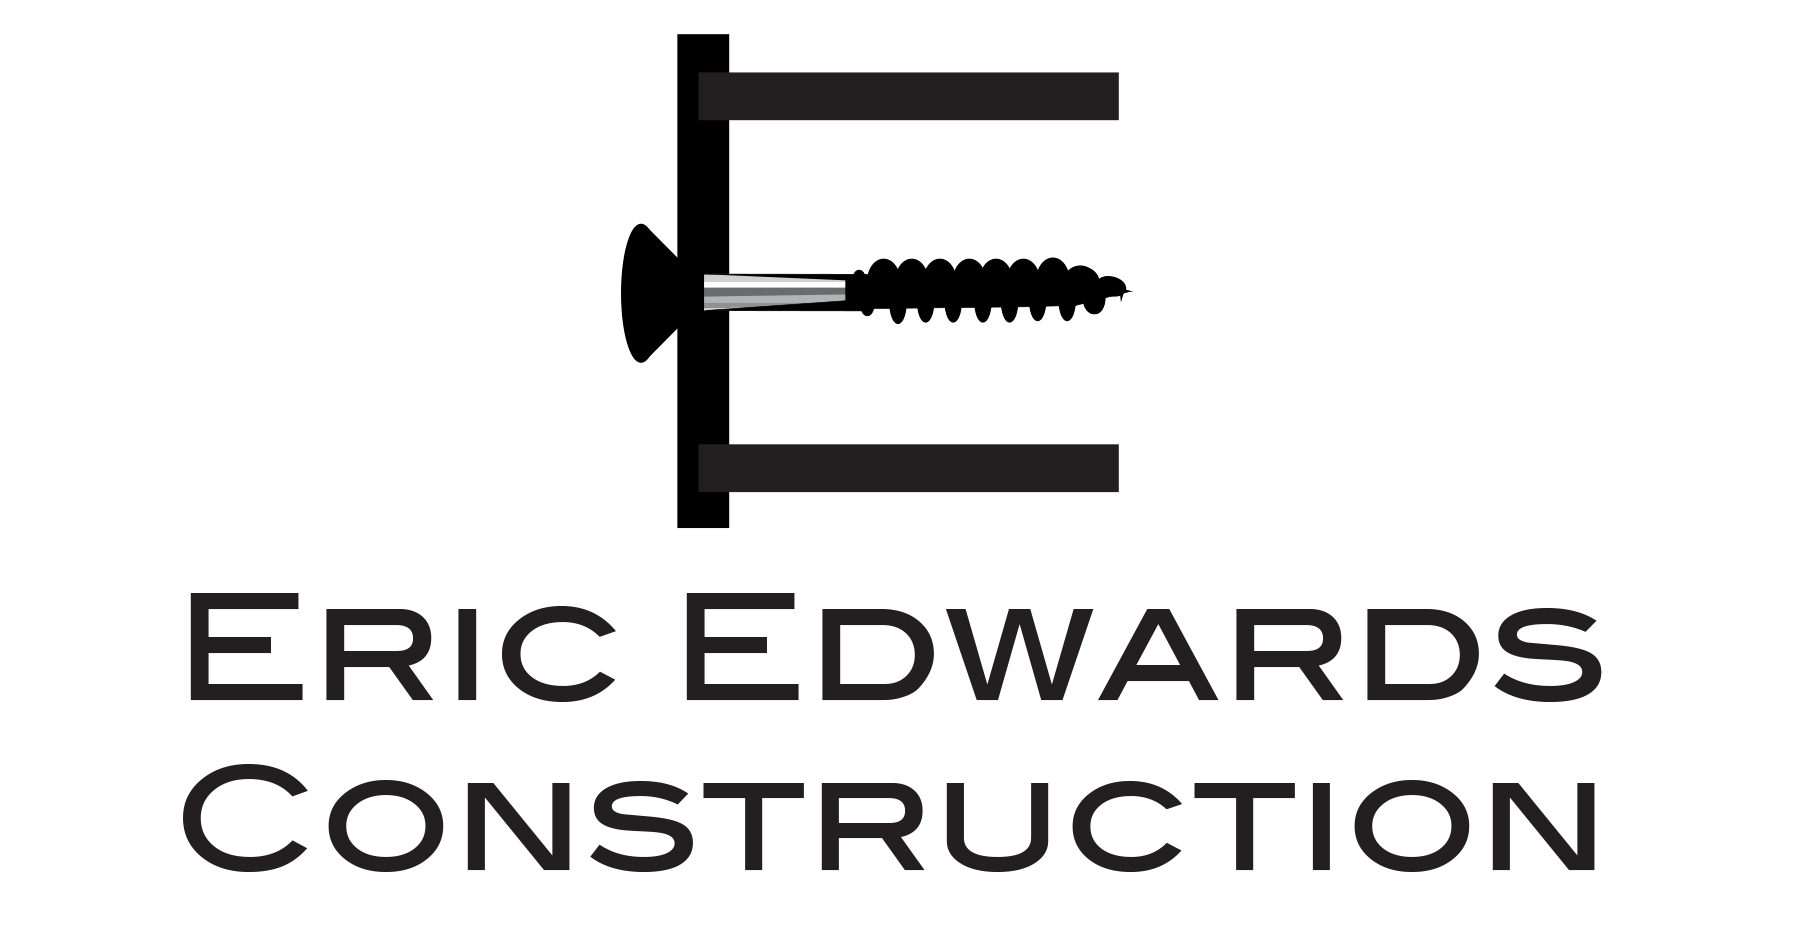 Edwards Construction Logo - Full House 2500.png